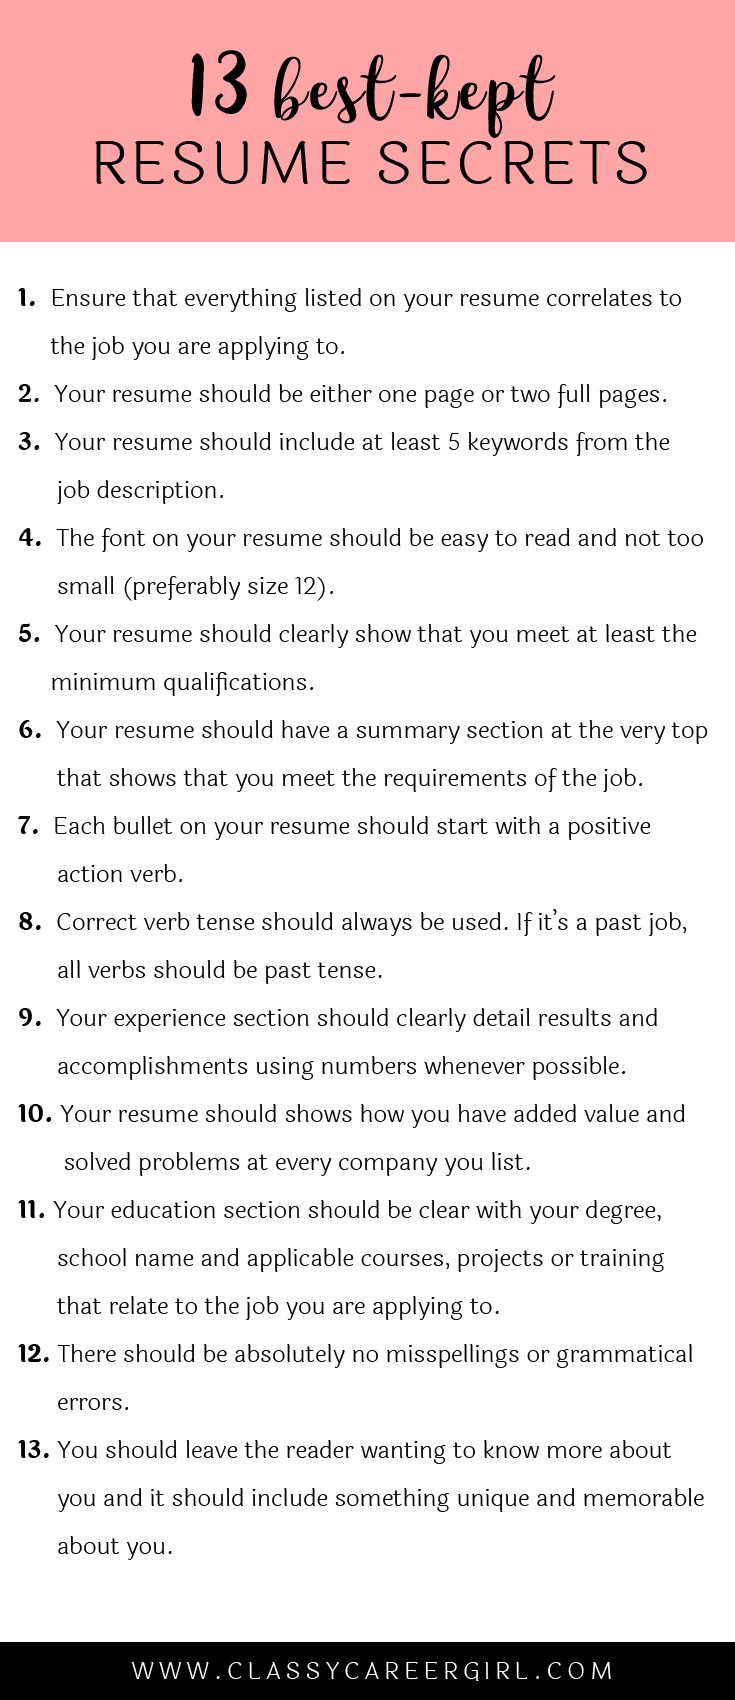 Opposenewapstandardsus  Pleasant  Ideas About Resume On Pinterest  Cv Format Resume Cv And  With Heavenly Some Hiring Managers Will Toss Your Resume Out If You Dont Know These  With Attractive Resume Builde Also Resume Temple In Addition Musical Theater Resume And Resume For Graduate School Application As Well As Resume Topics Additionally  Page Resume Examples From Pinterestcom With Opposenewapstandardsus  Heavenly  Ideas About Resume On Pinterest  Cv Format Resume Cv And  With Attractive Some Hiring Managers Will Toss Your Resume Out If You Dont Know These  And Pleasant Resume Builde Also Resume Temple In Addition Musical Theater Resume From Pinterestcom